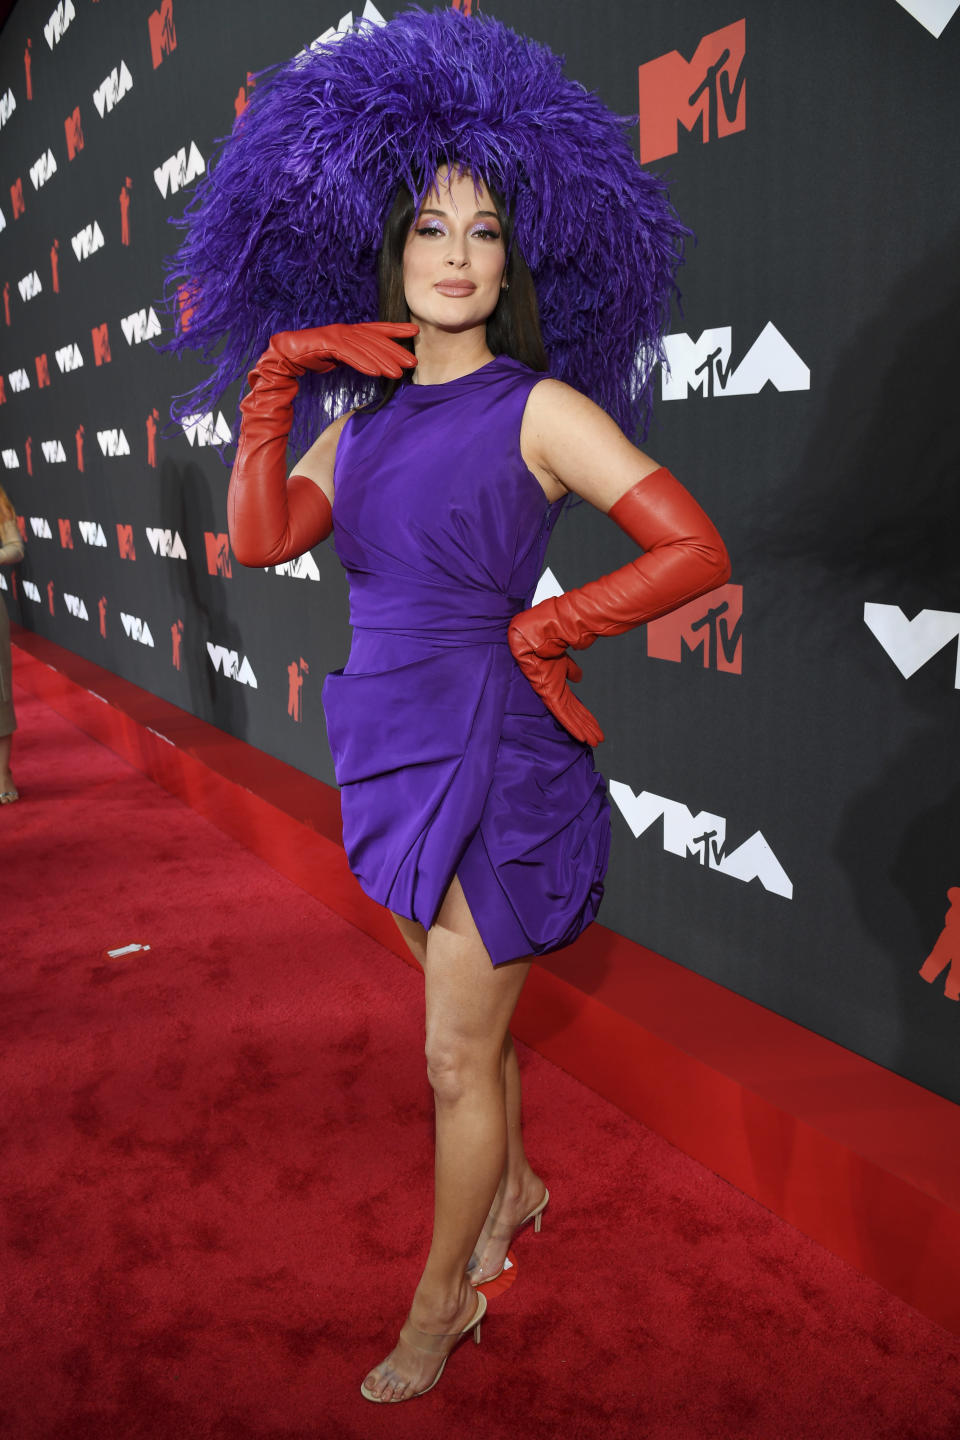 Kacey Musgraves - Credit: Getty Images for MTV/ViacomCBS.